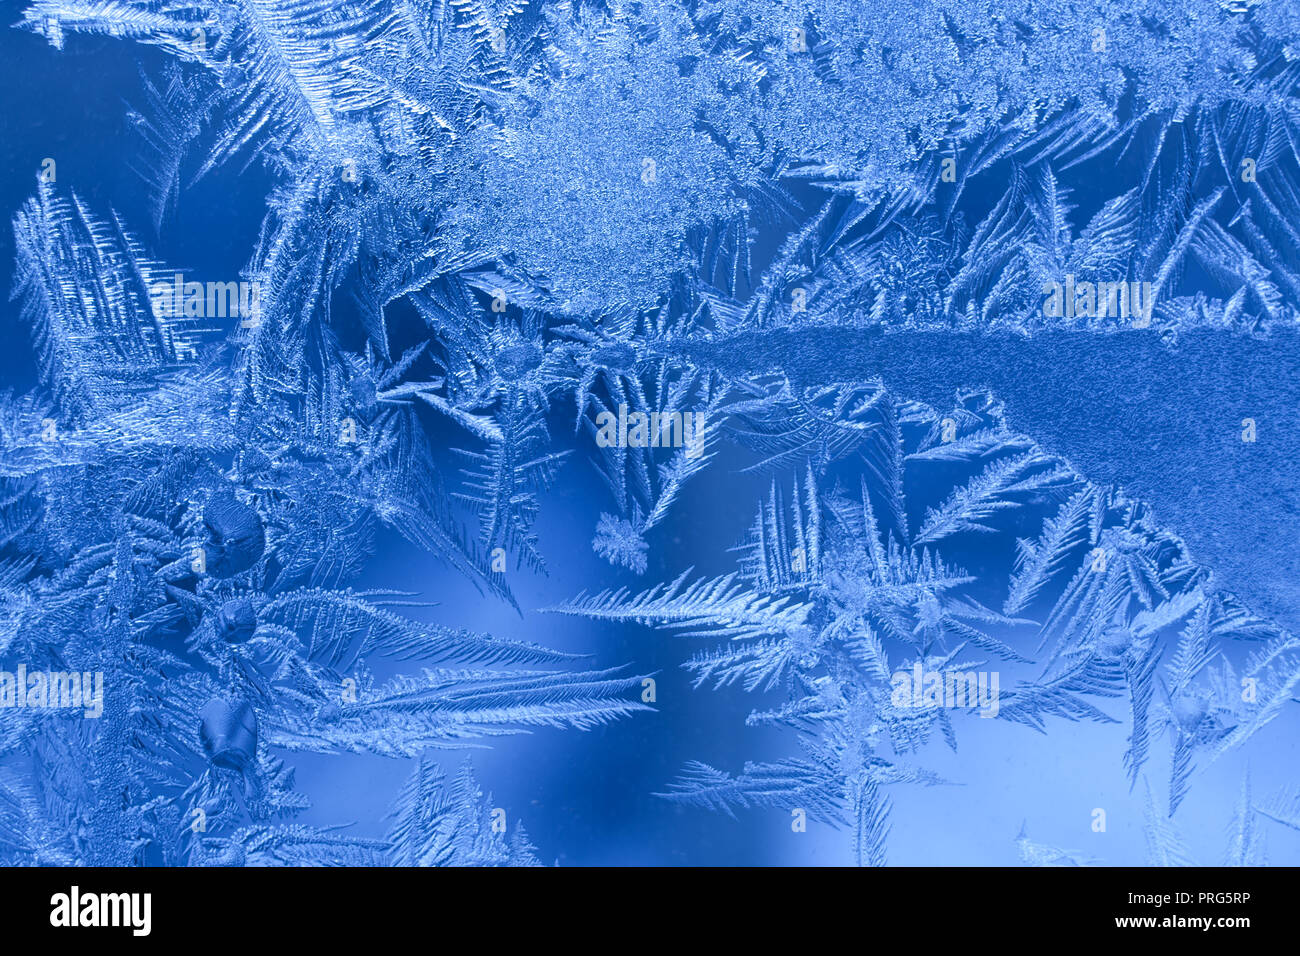 Blue frosty pattern of openwork pointed snowflakes on winter glass pane. - Stock Image